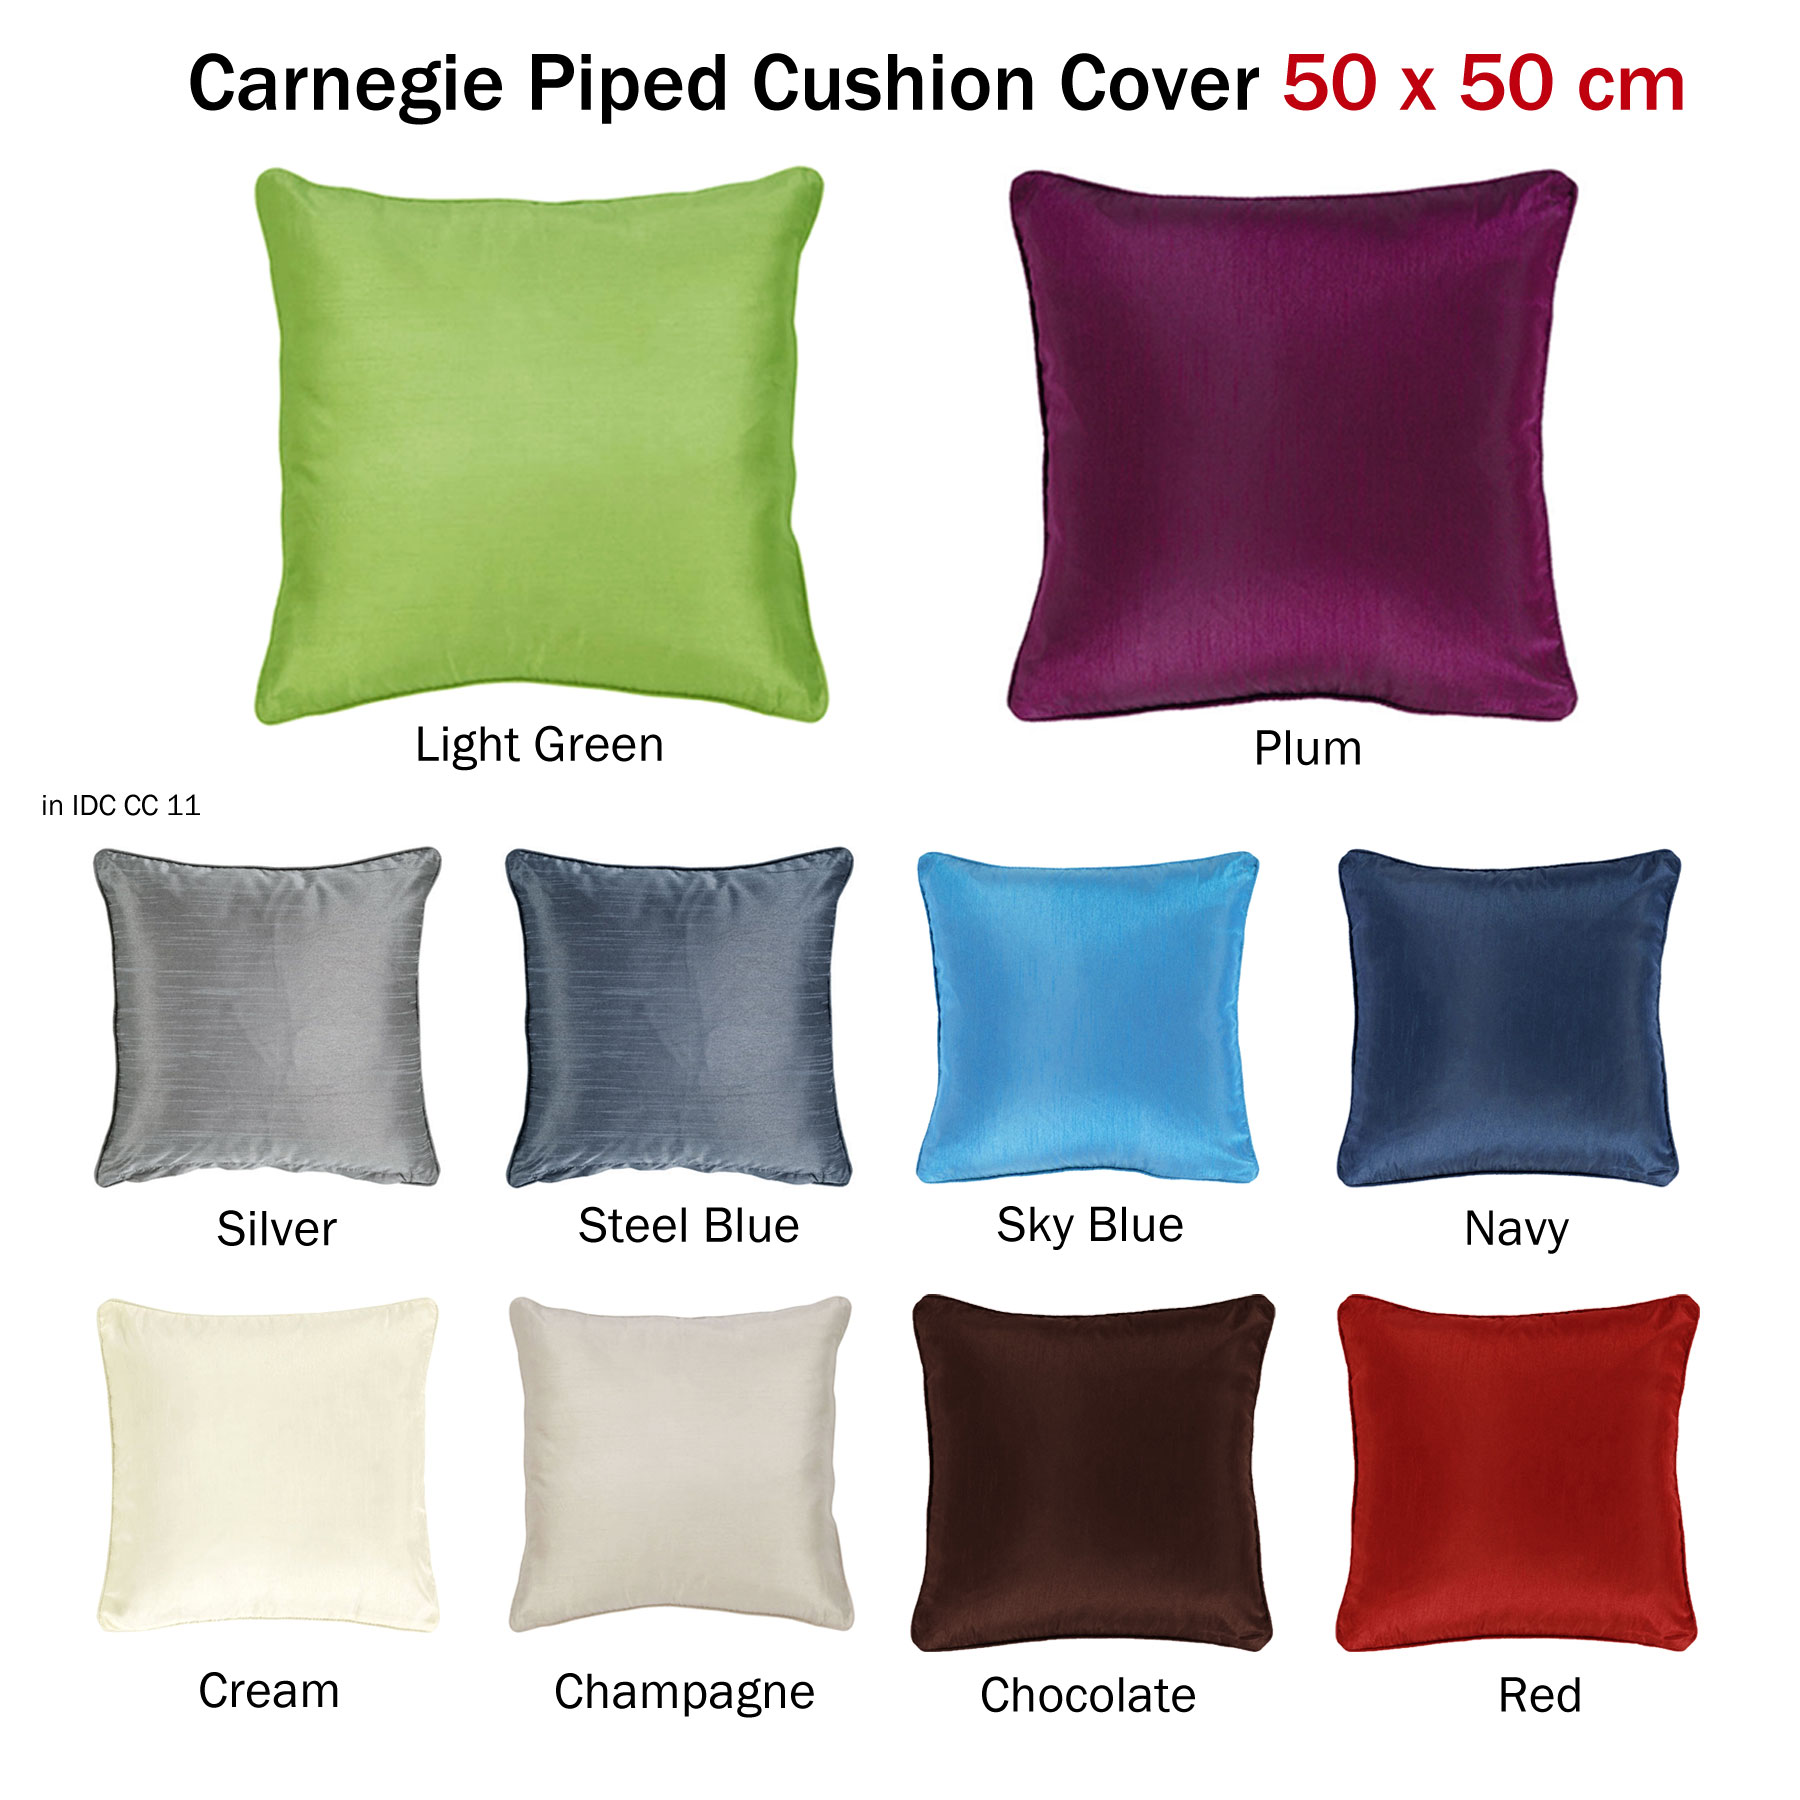 Carnegie Faux Silk Large Piped Cushion Cover 50 X 50 Cm Ebay